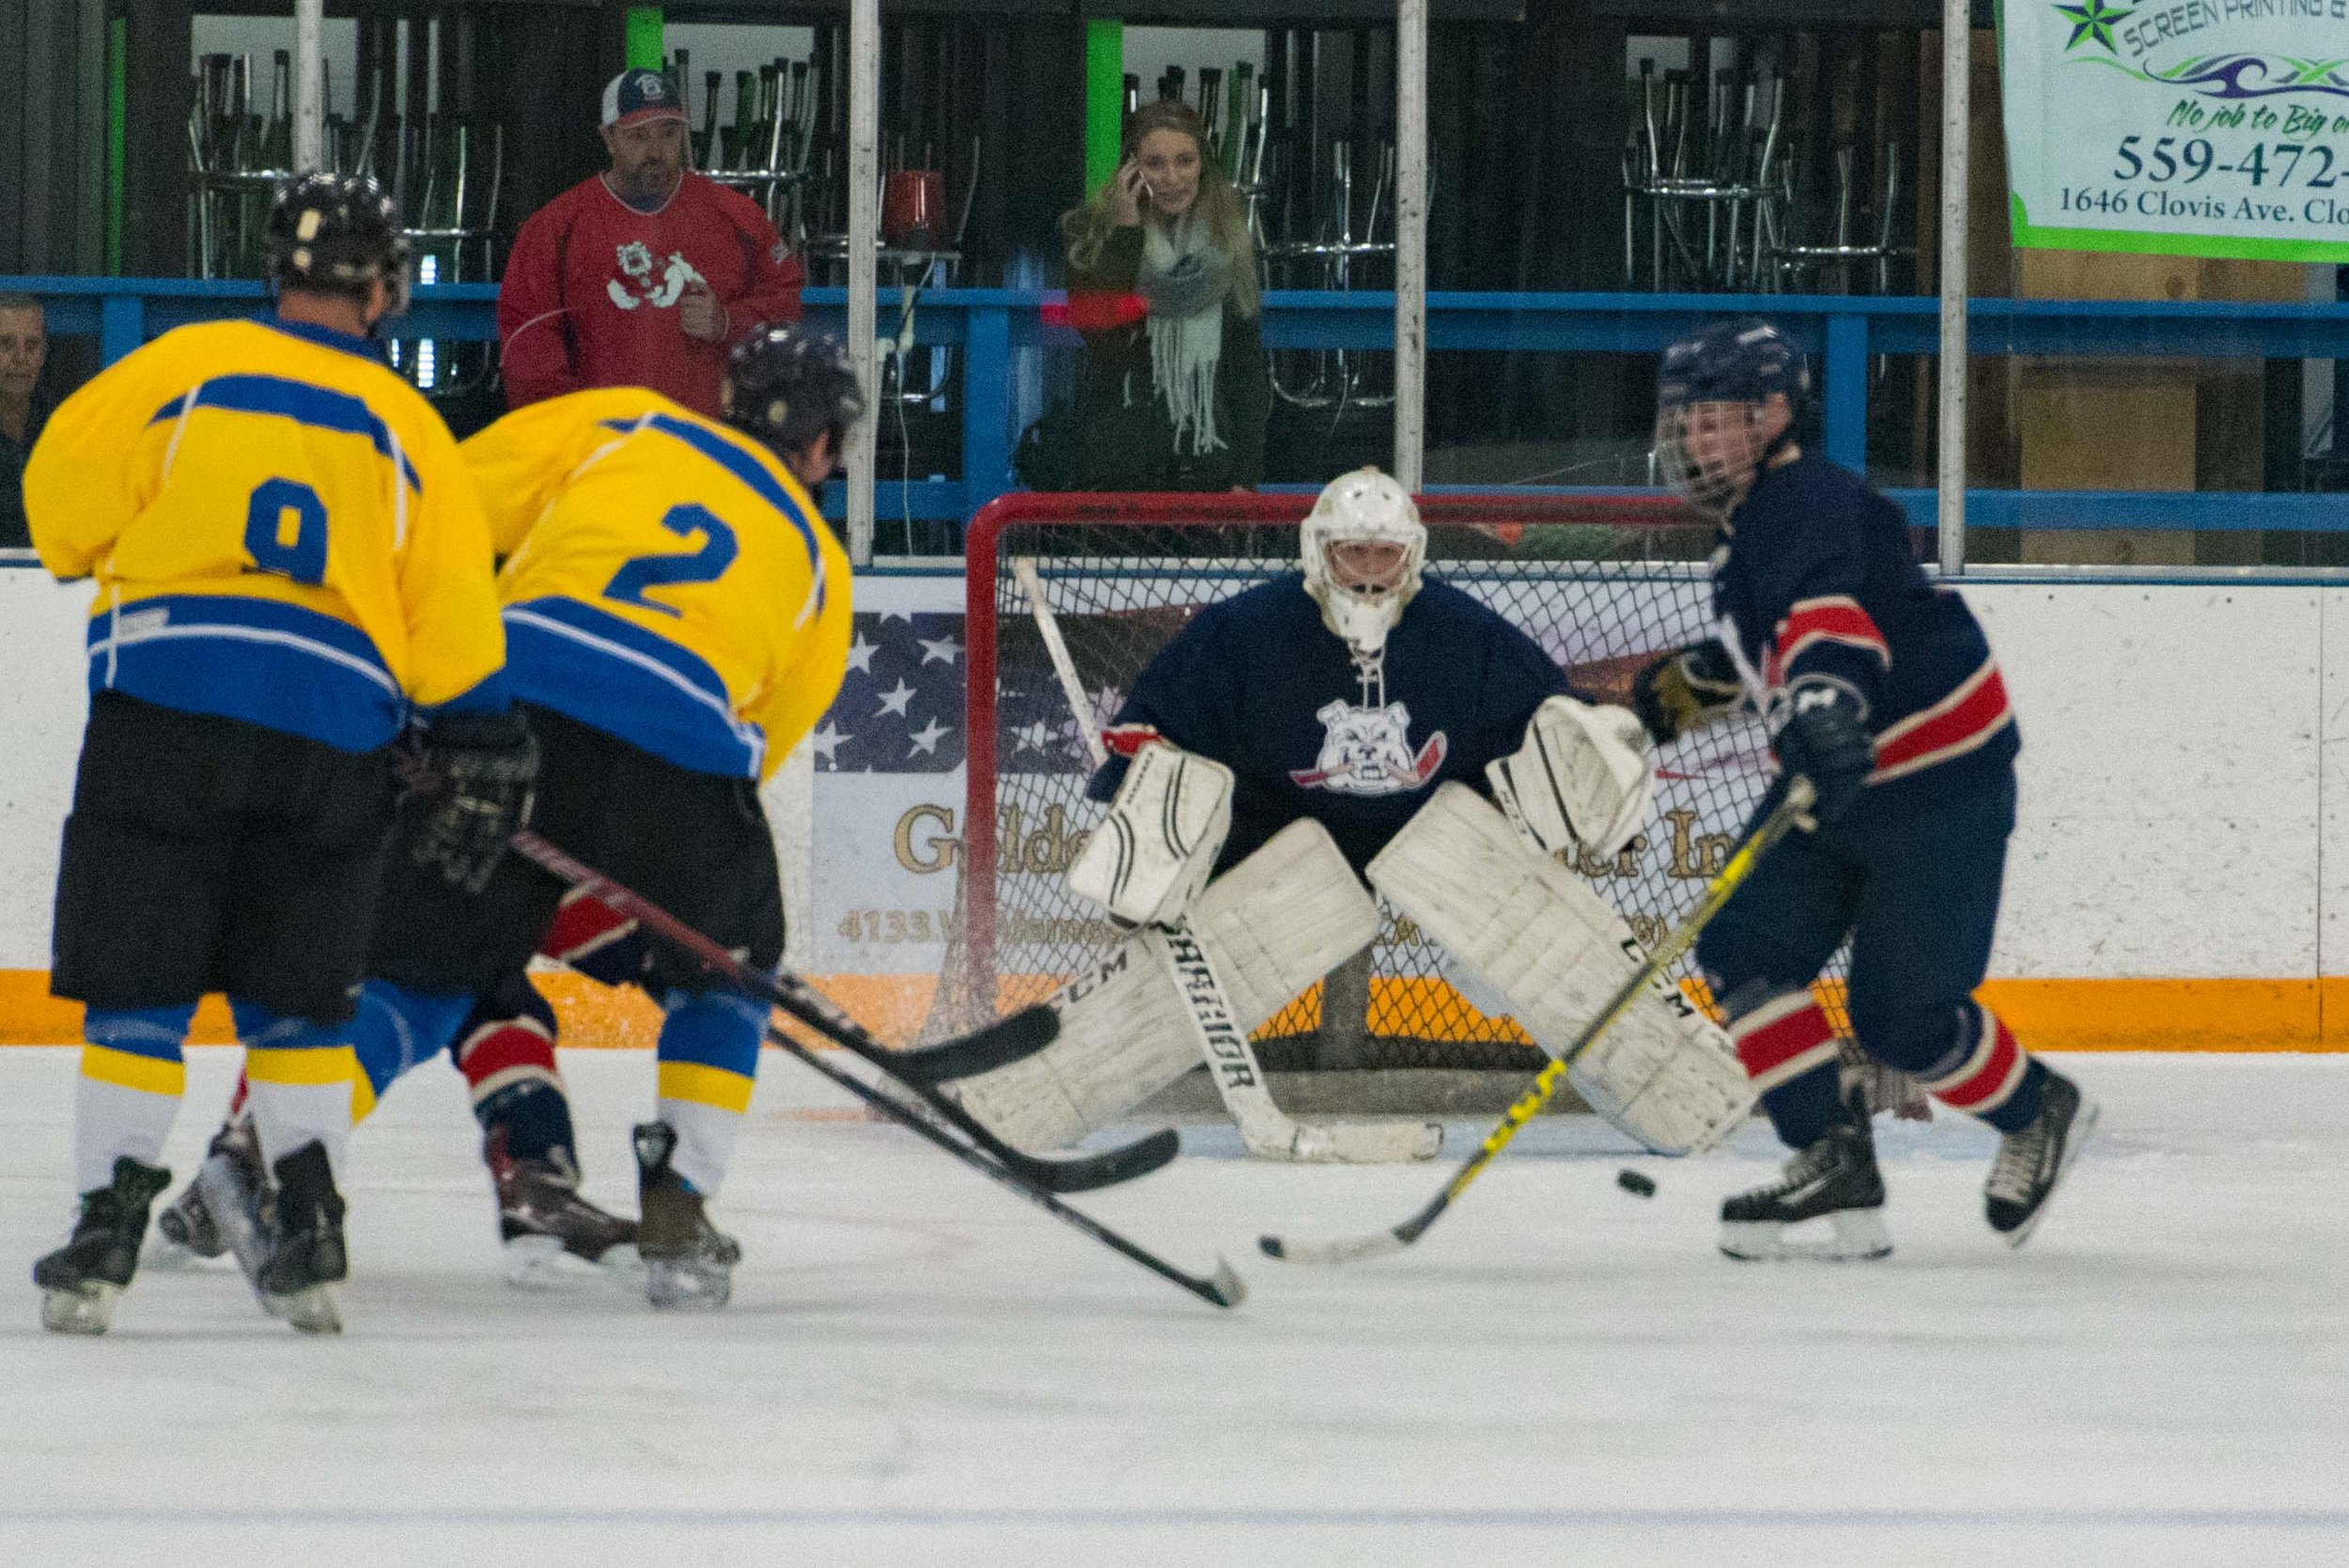 Ice dogs v WC Seals 10-13-17-27.jpg